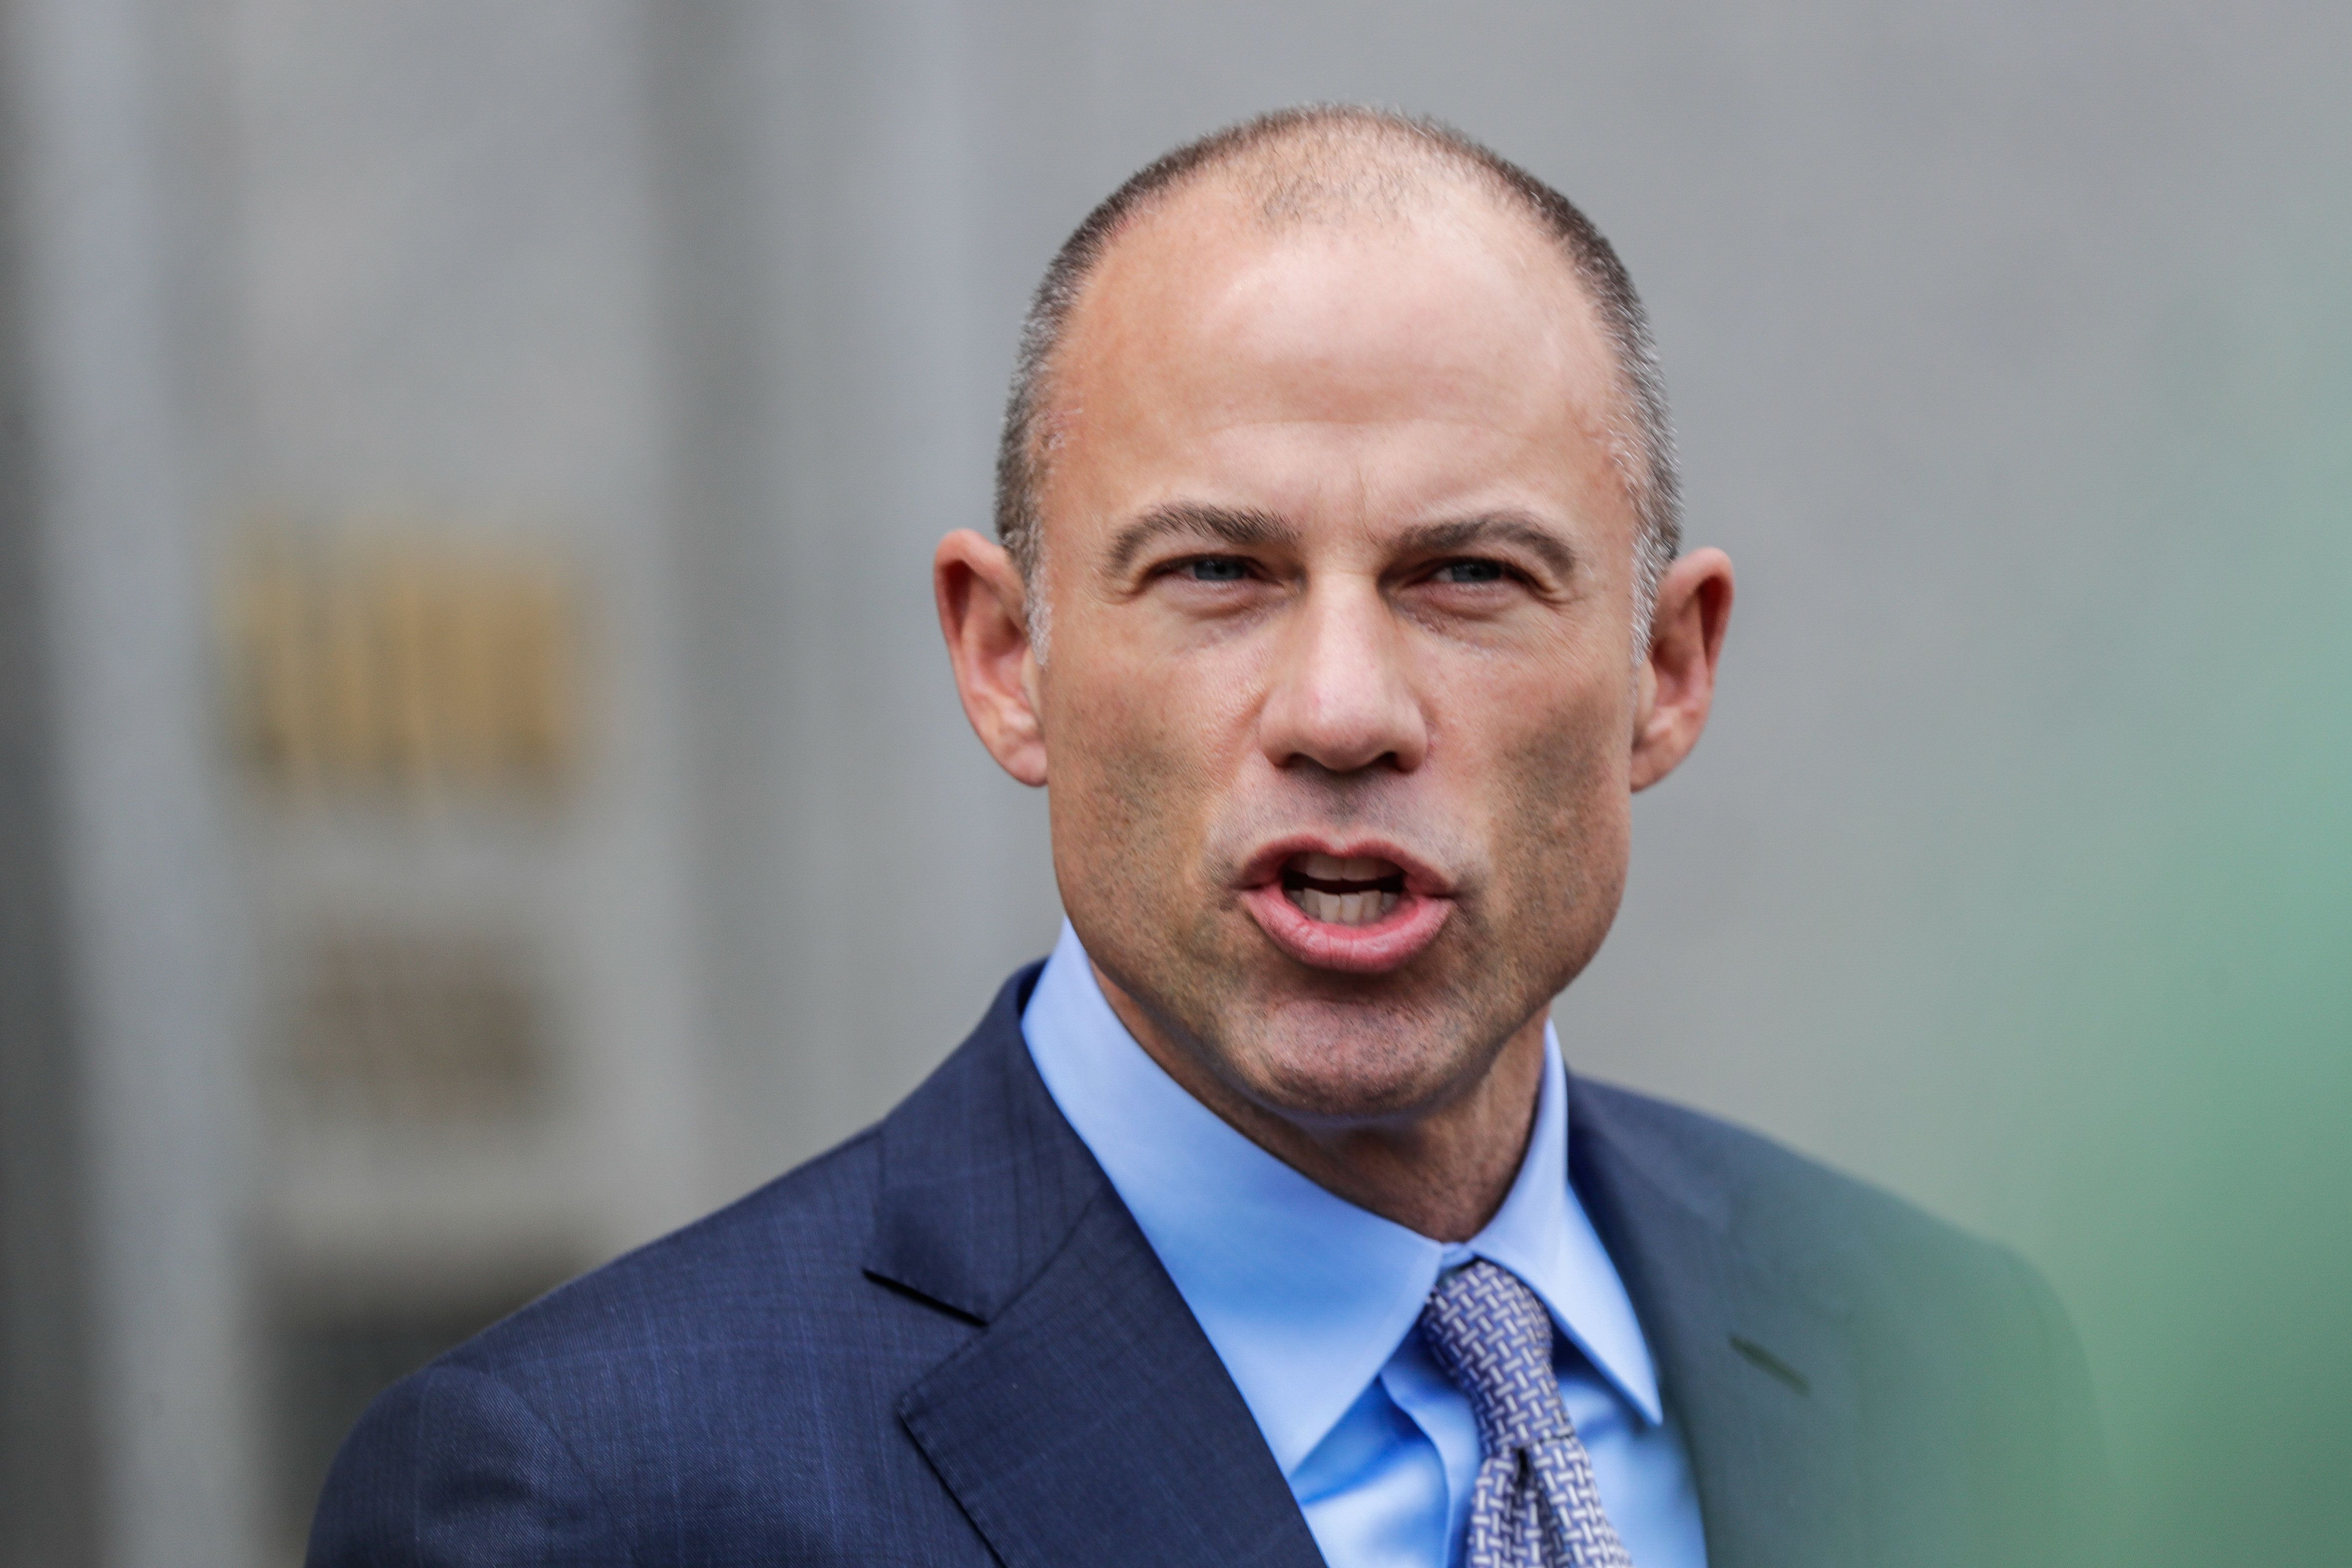 Michael Avenatti, attorney for Stormy Daniels, is pictured outside the Manhattan Federal Court in New York City, New York, U.S., April 13, 2018. REUTERS/Jeenah Moon